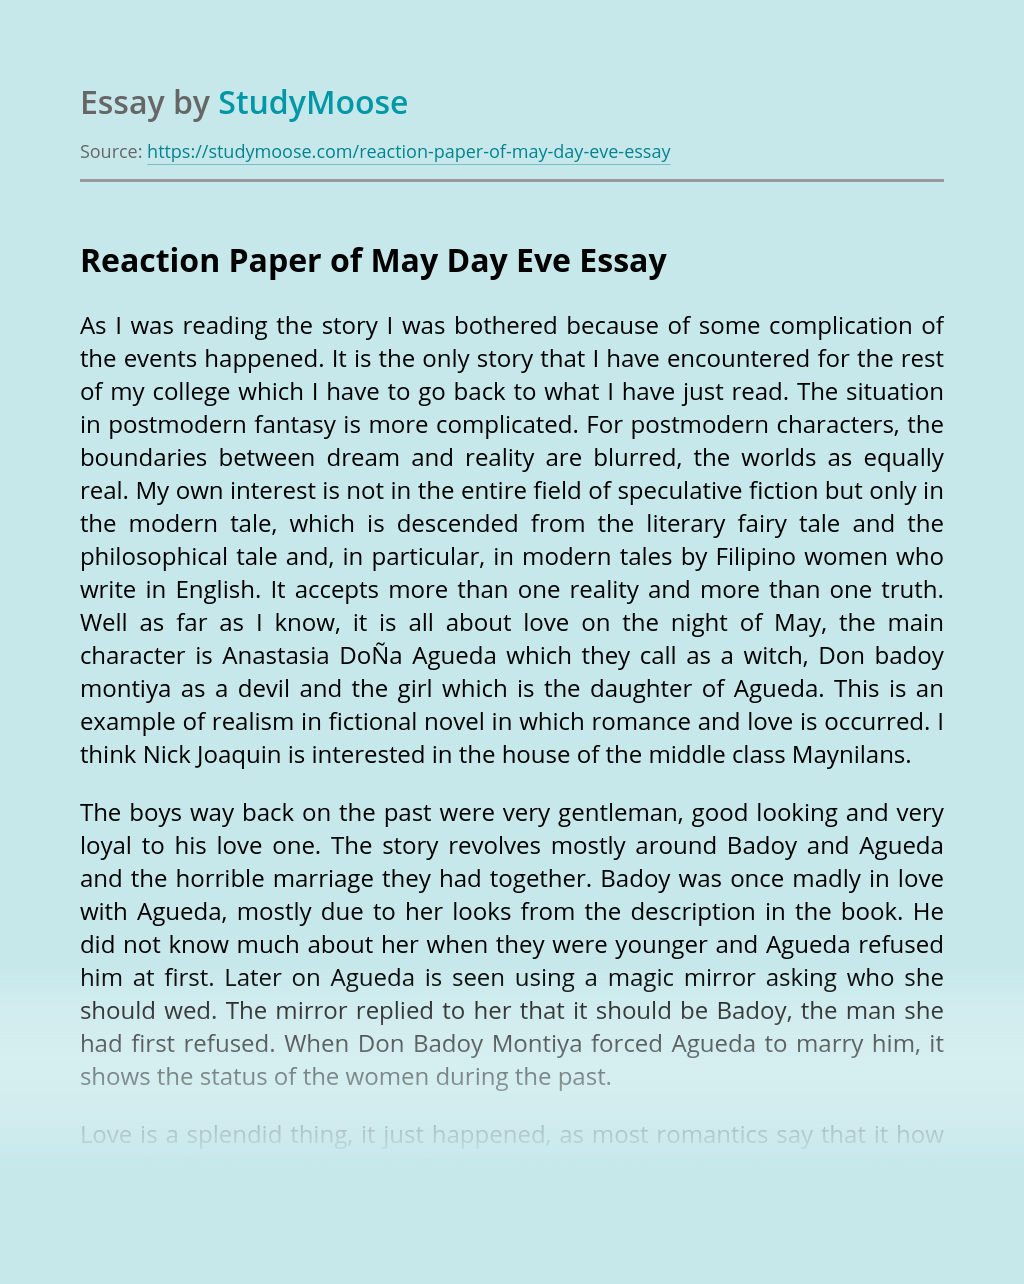 Reaction Paper of May Day Eve